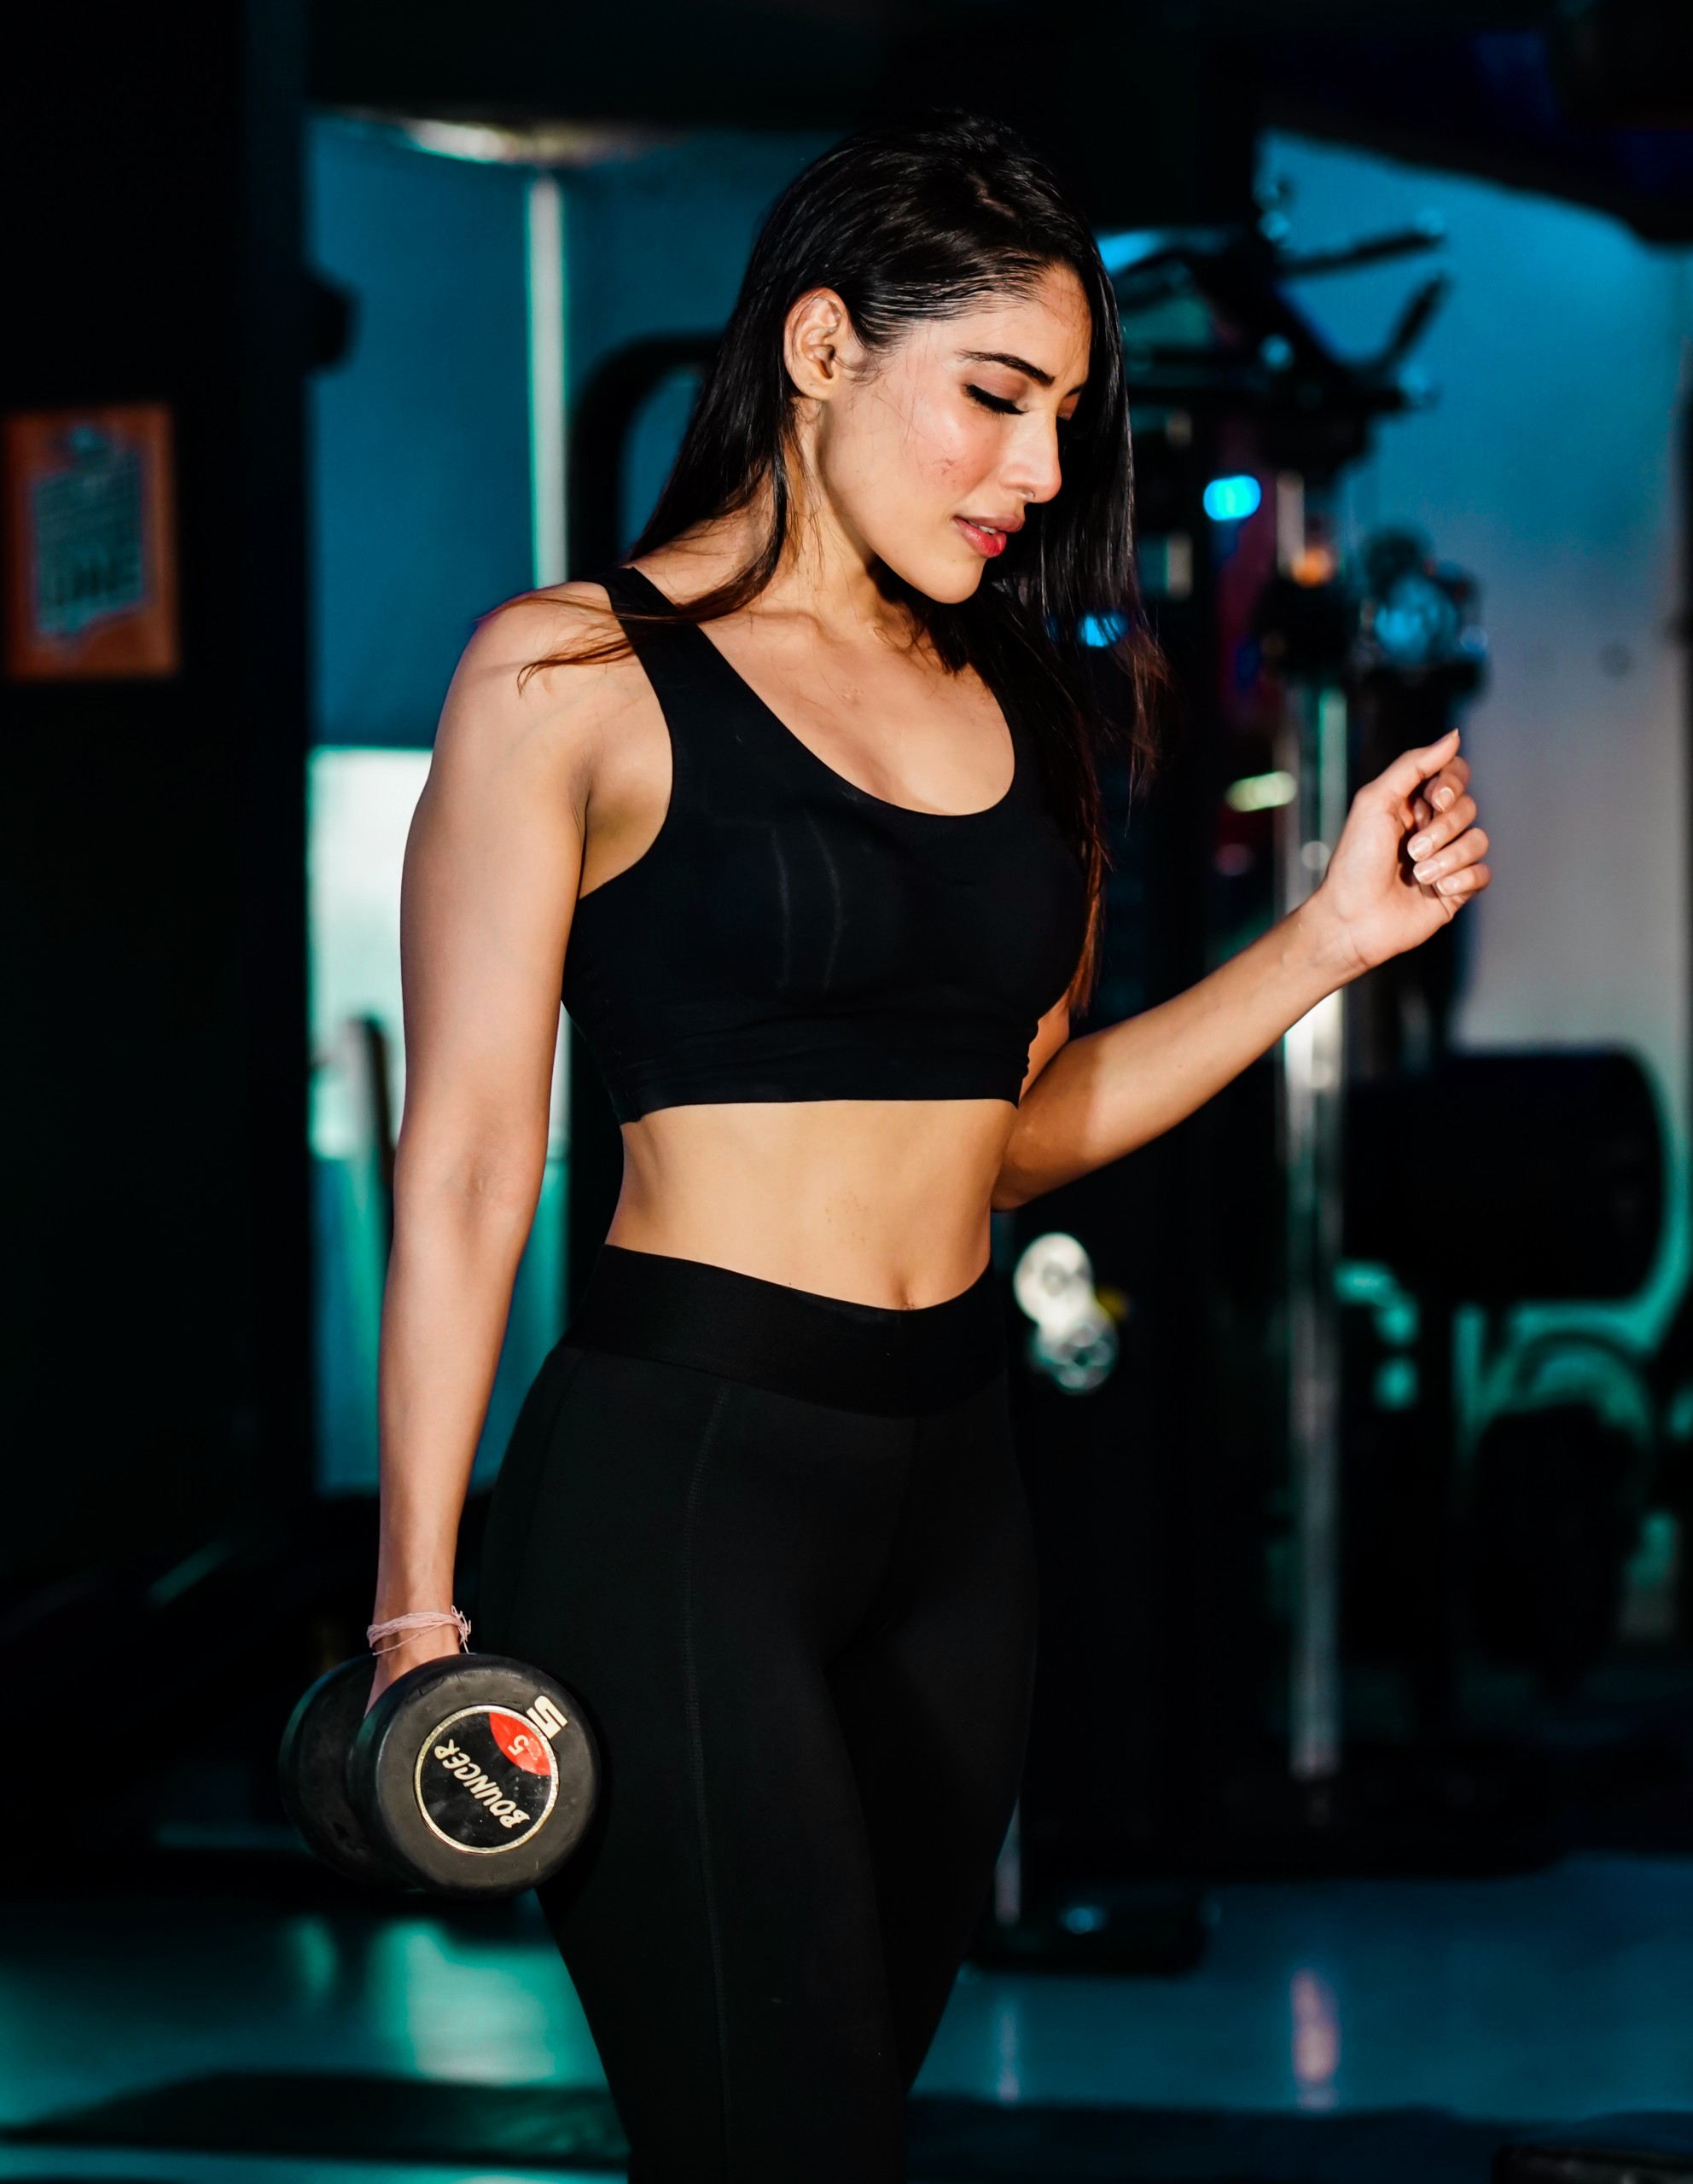 Fitness conscious girl